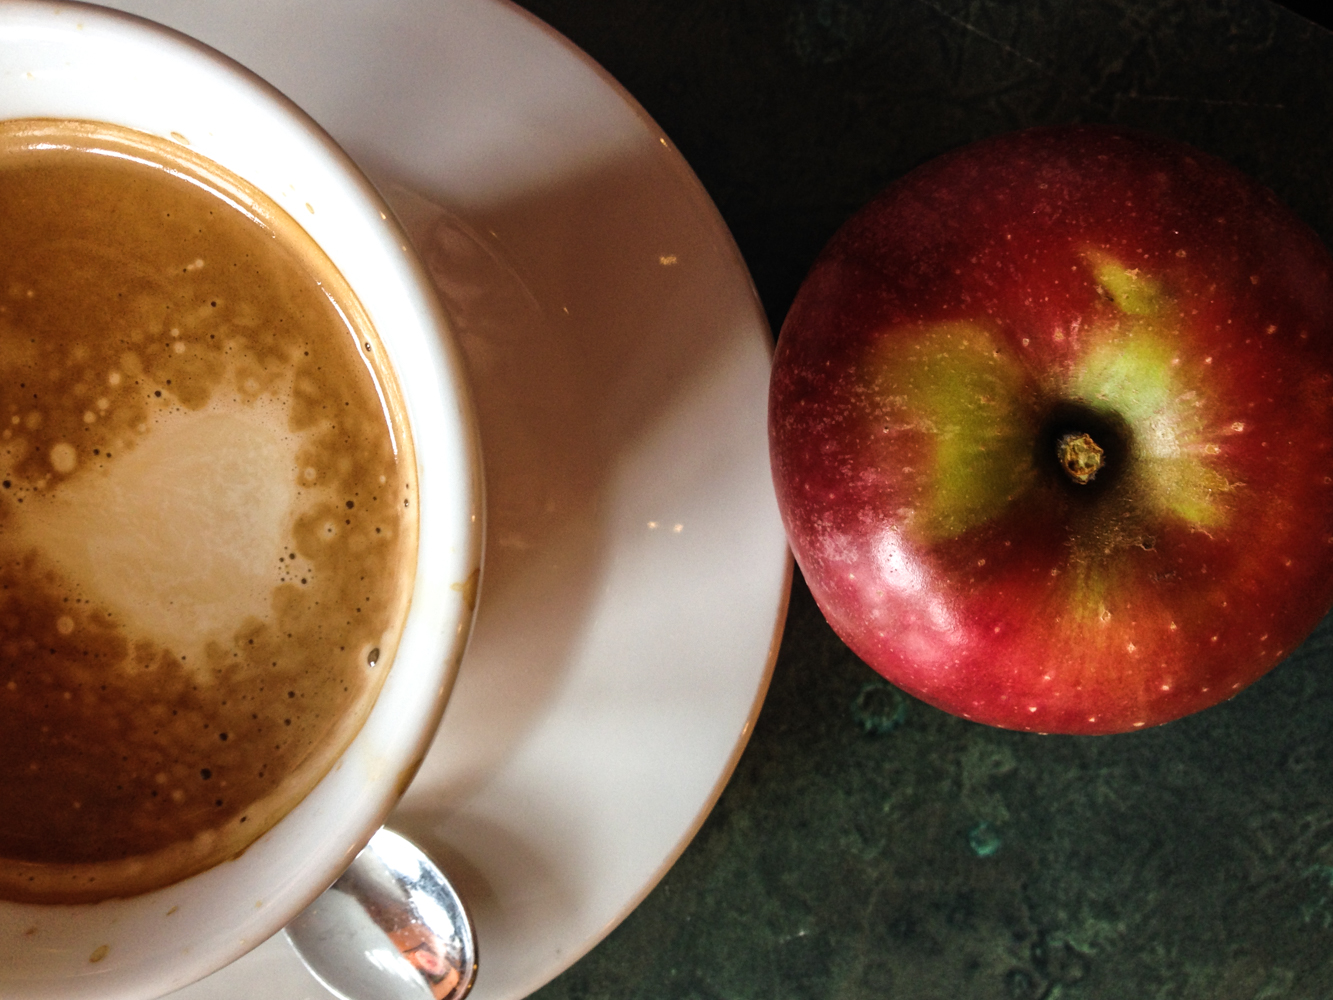 Sunrise Bakery Americano (two shots of espresso plus hot water and a bit of cream) and Reed Valley Orchard Stayman Winesap apple